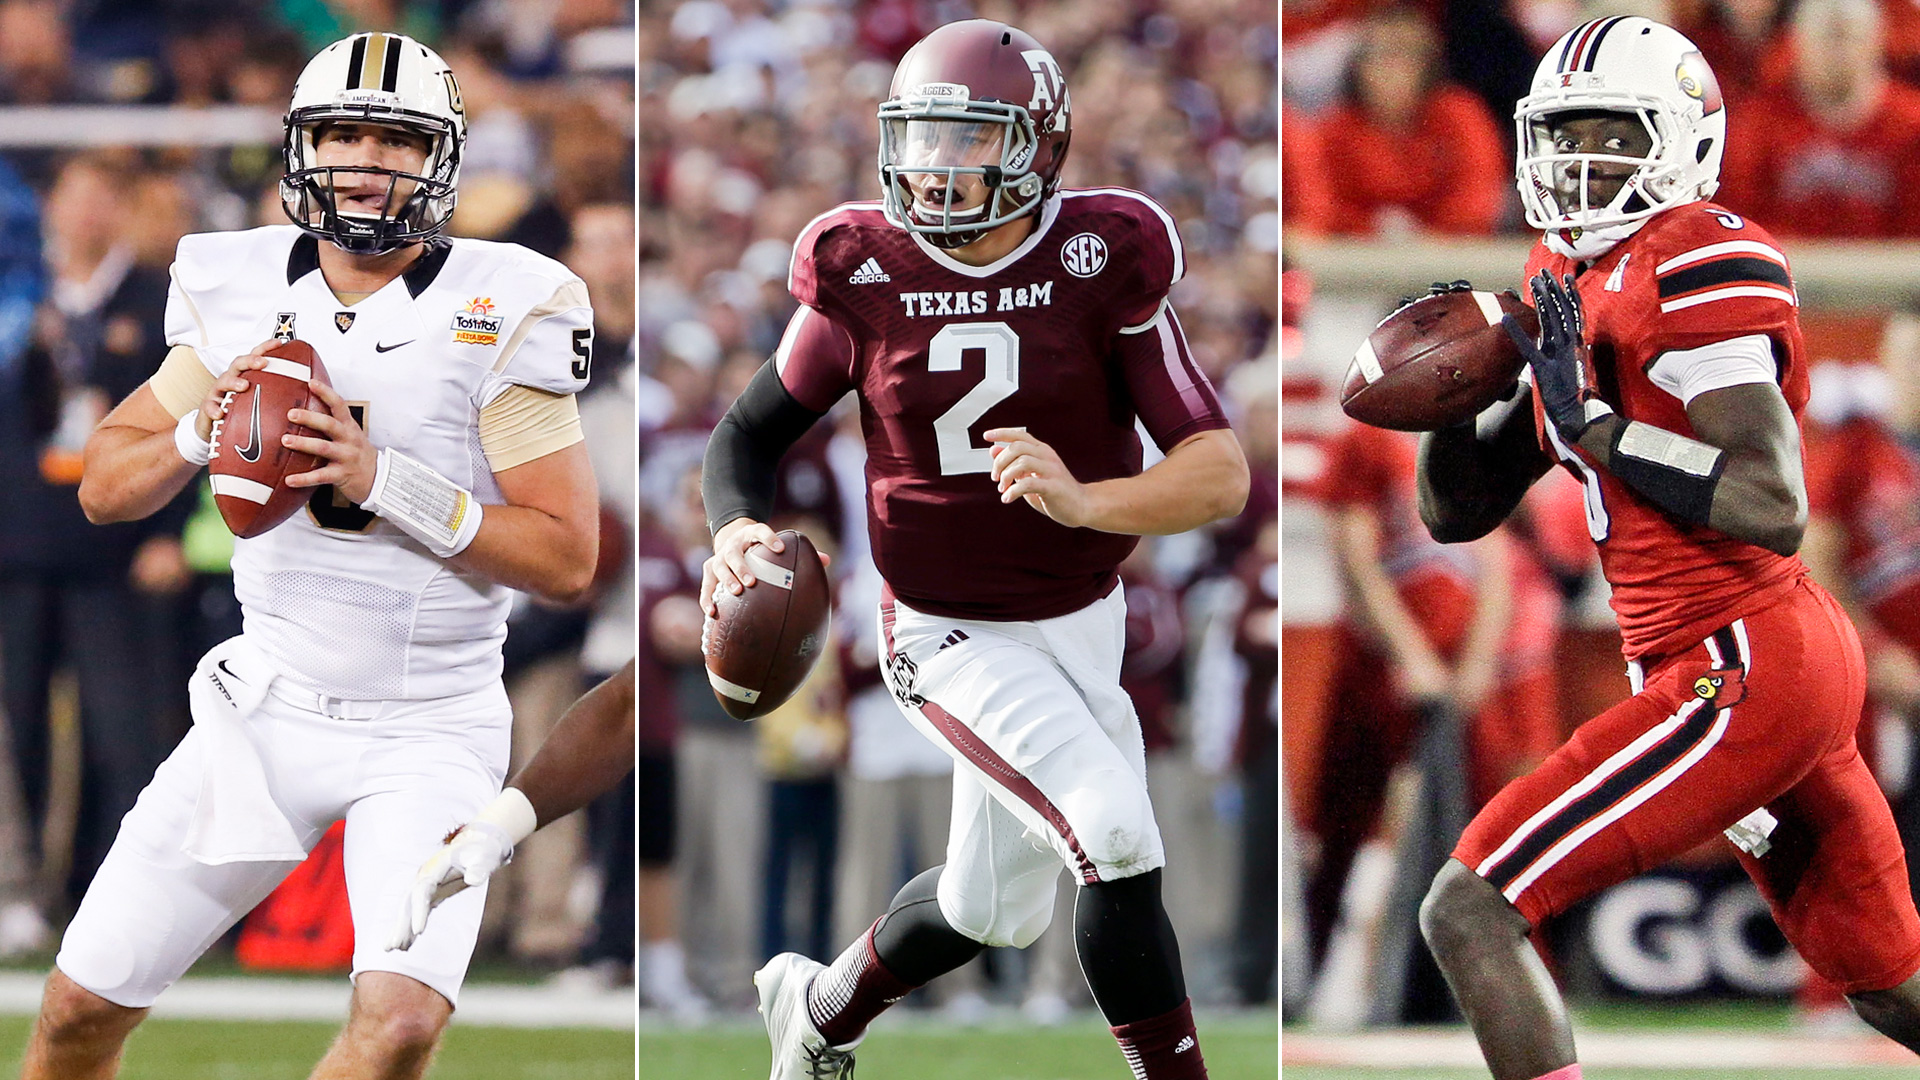 Johnny-Manziel-Blake-Bortles-and-Teddy-Bridgewater-010814-AP-FTR.jpg